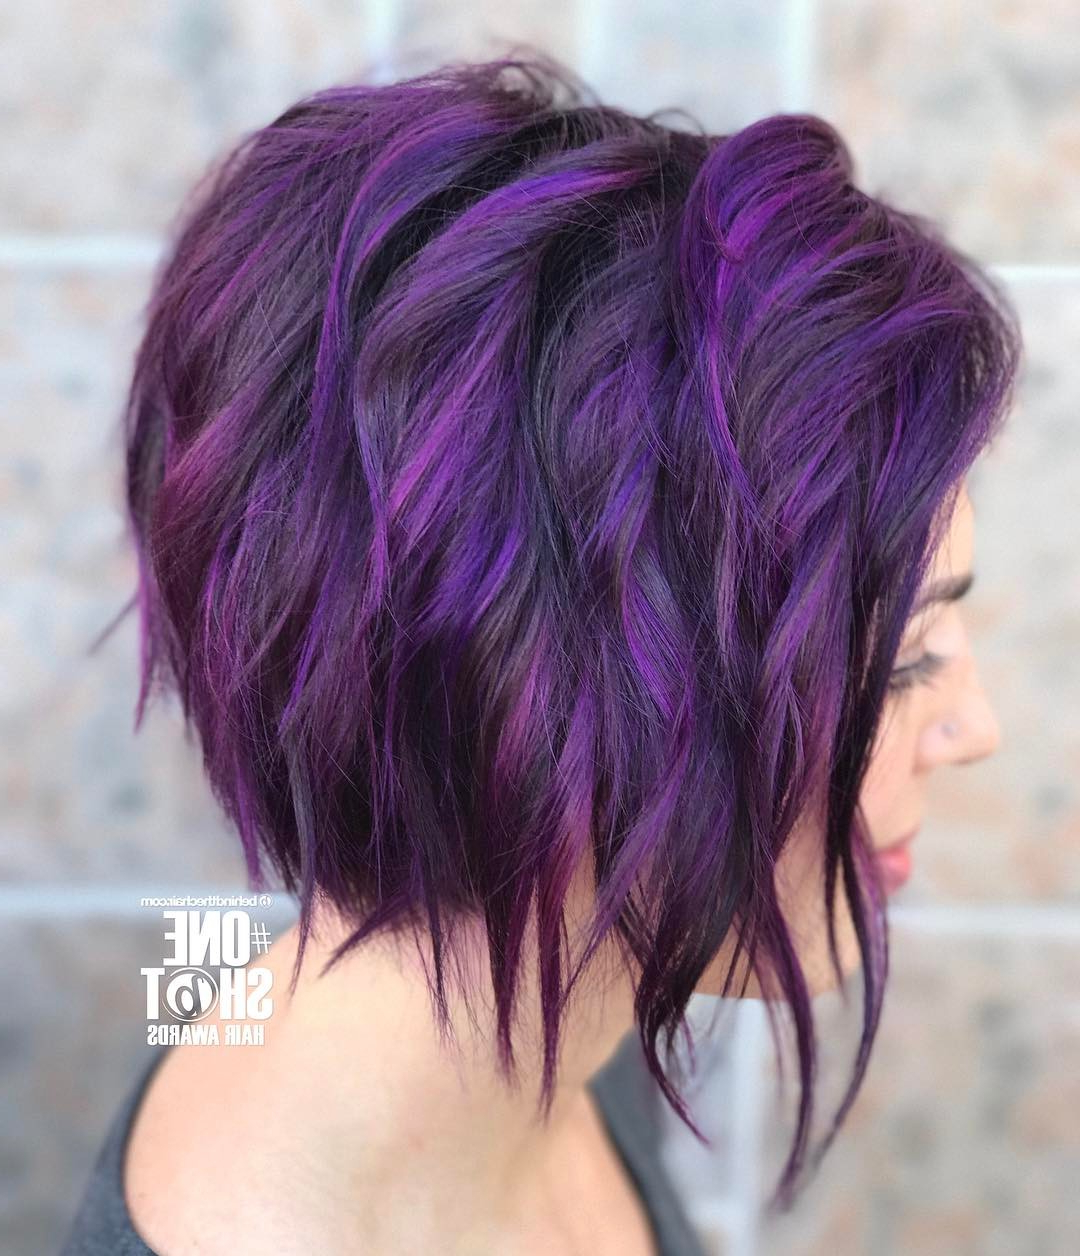 10 Chic Short Bob Haircuts That Balance Your Face Shape! – Short With Regard To Choppy Brown And Lavender Bob Hairstyles (View 1 of 20)